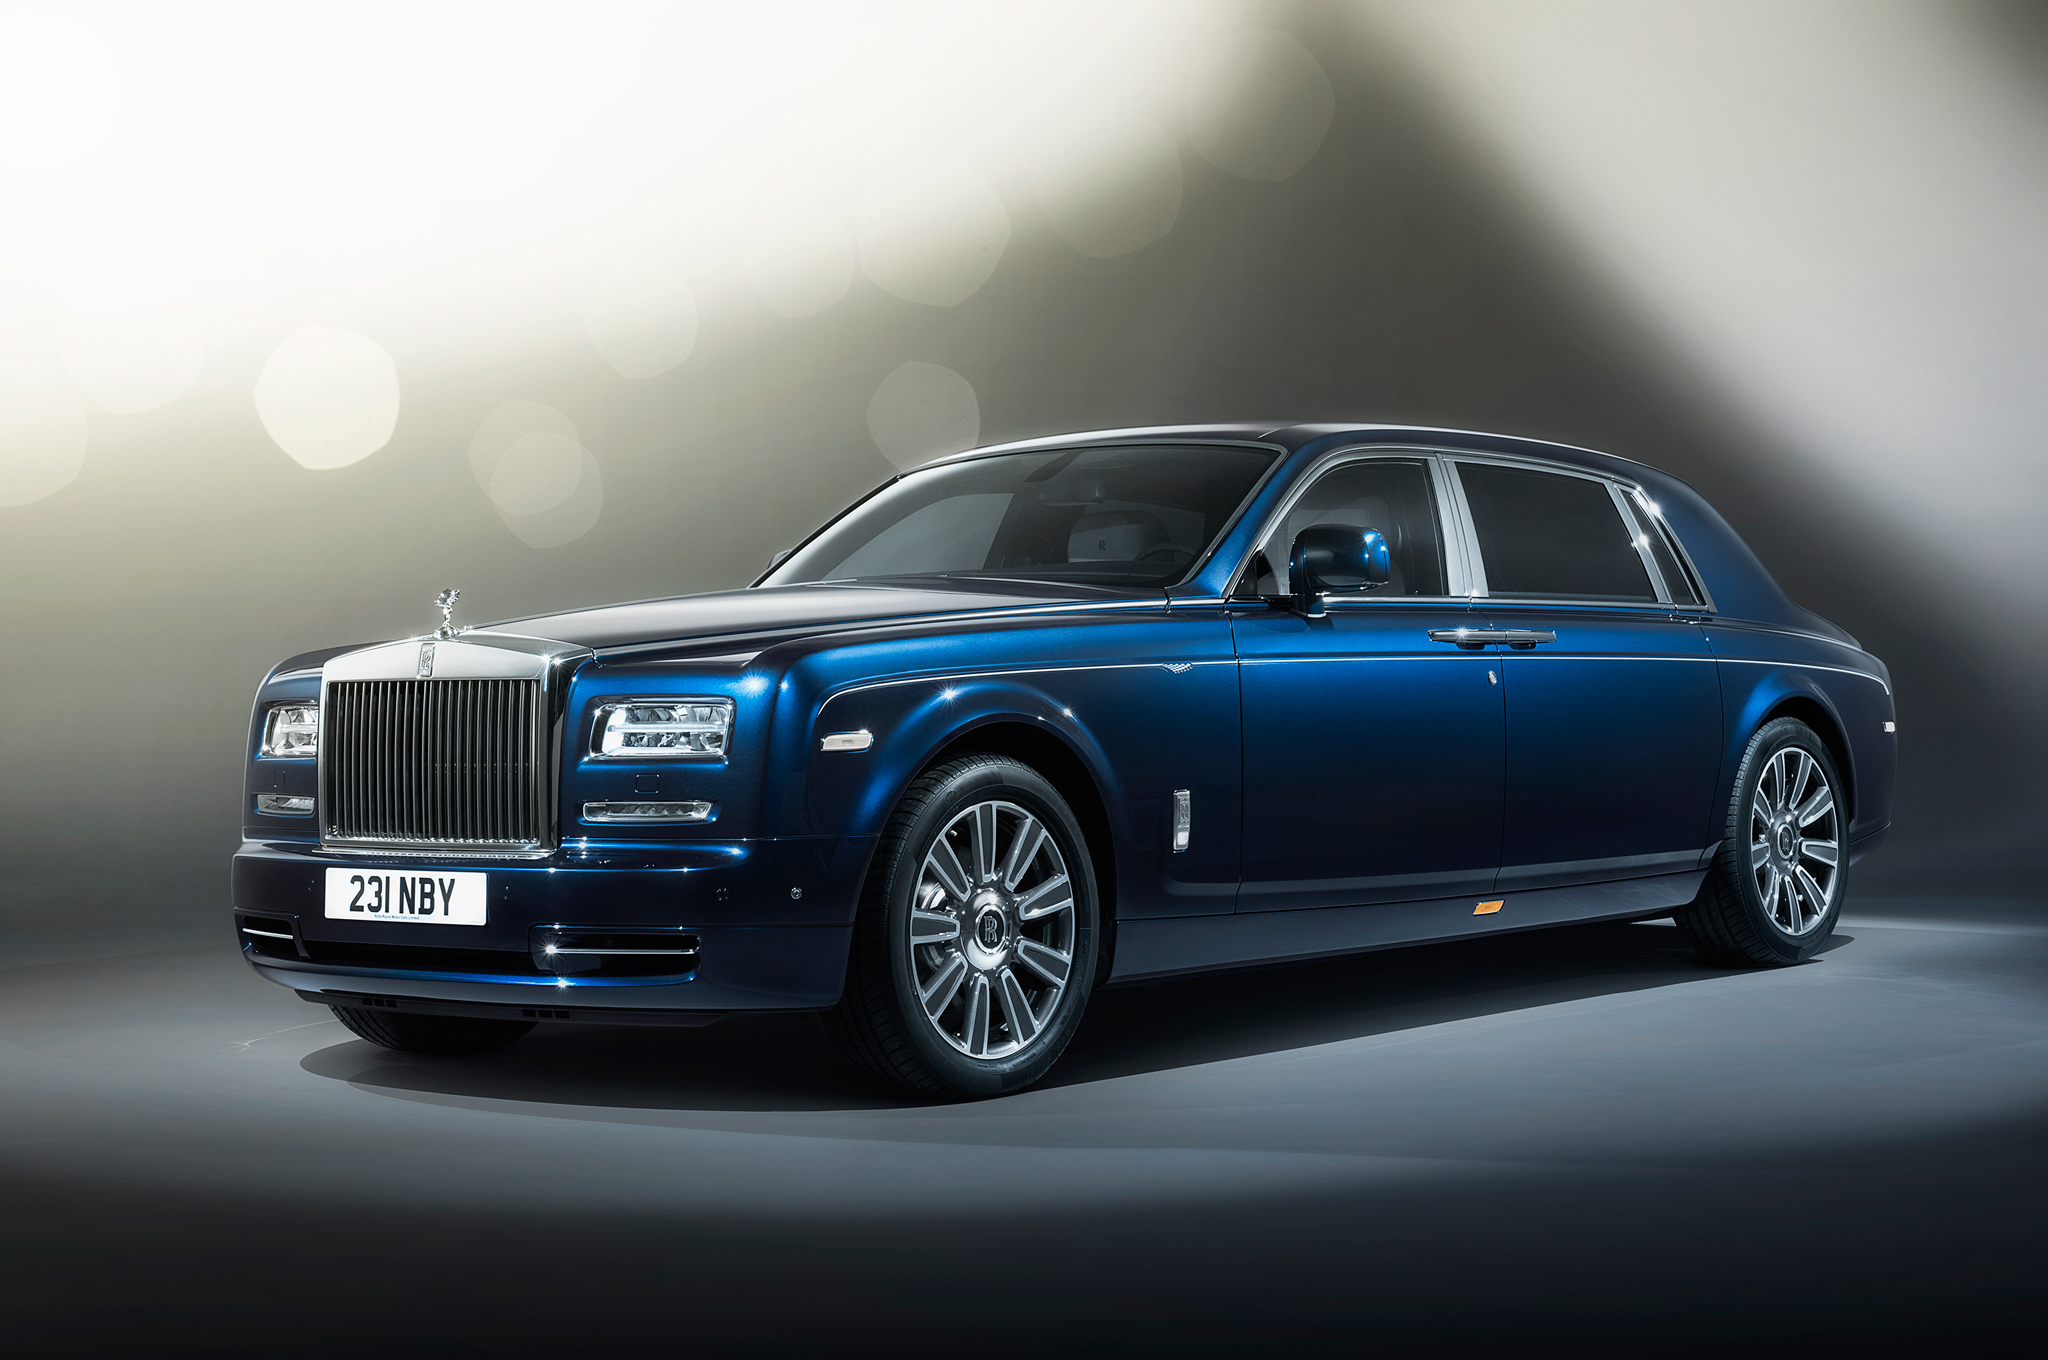 Ultra-Limited Rolls-Royce Phantom Limelight is for the Super-Famous